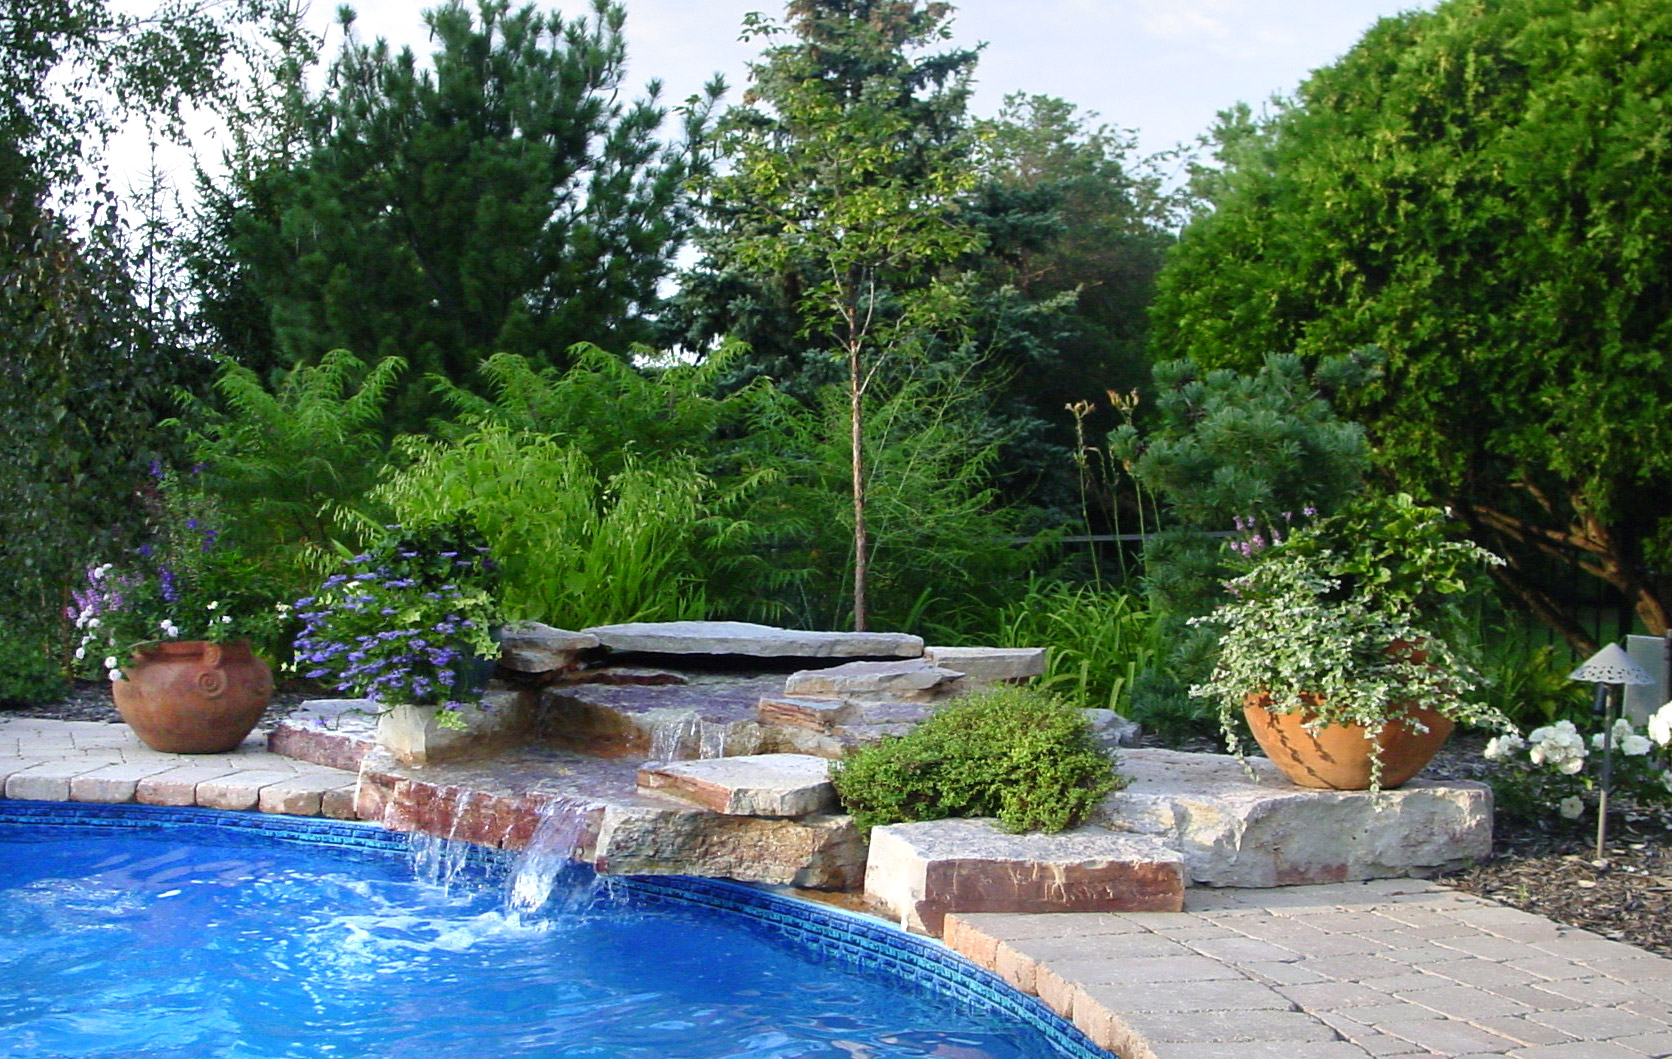 You can enjoy the tranquil sights and sounds of falling water as you relax poolside